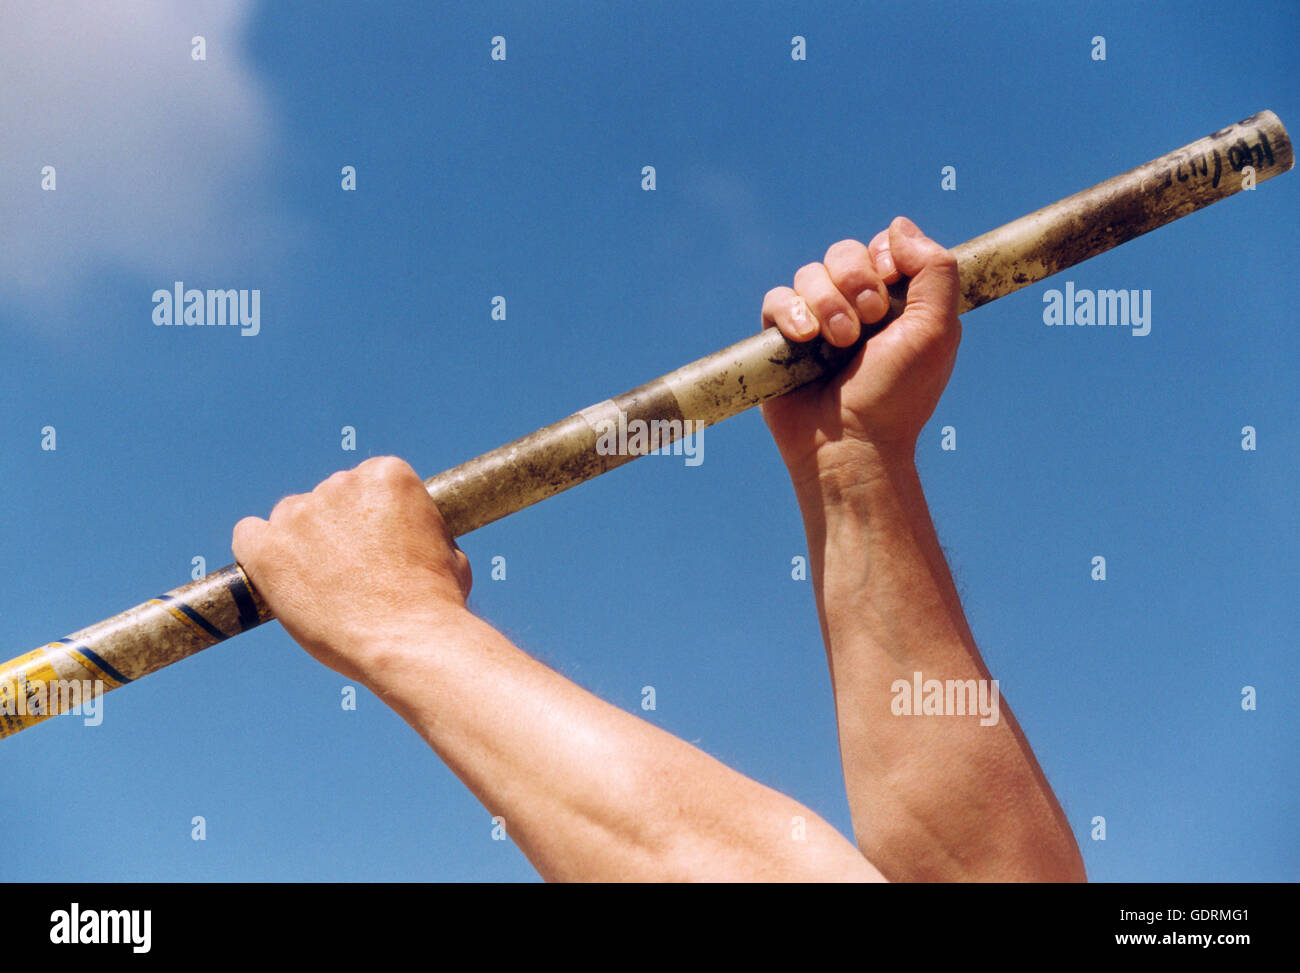 Pole vaulter holding his rod - Stock Image